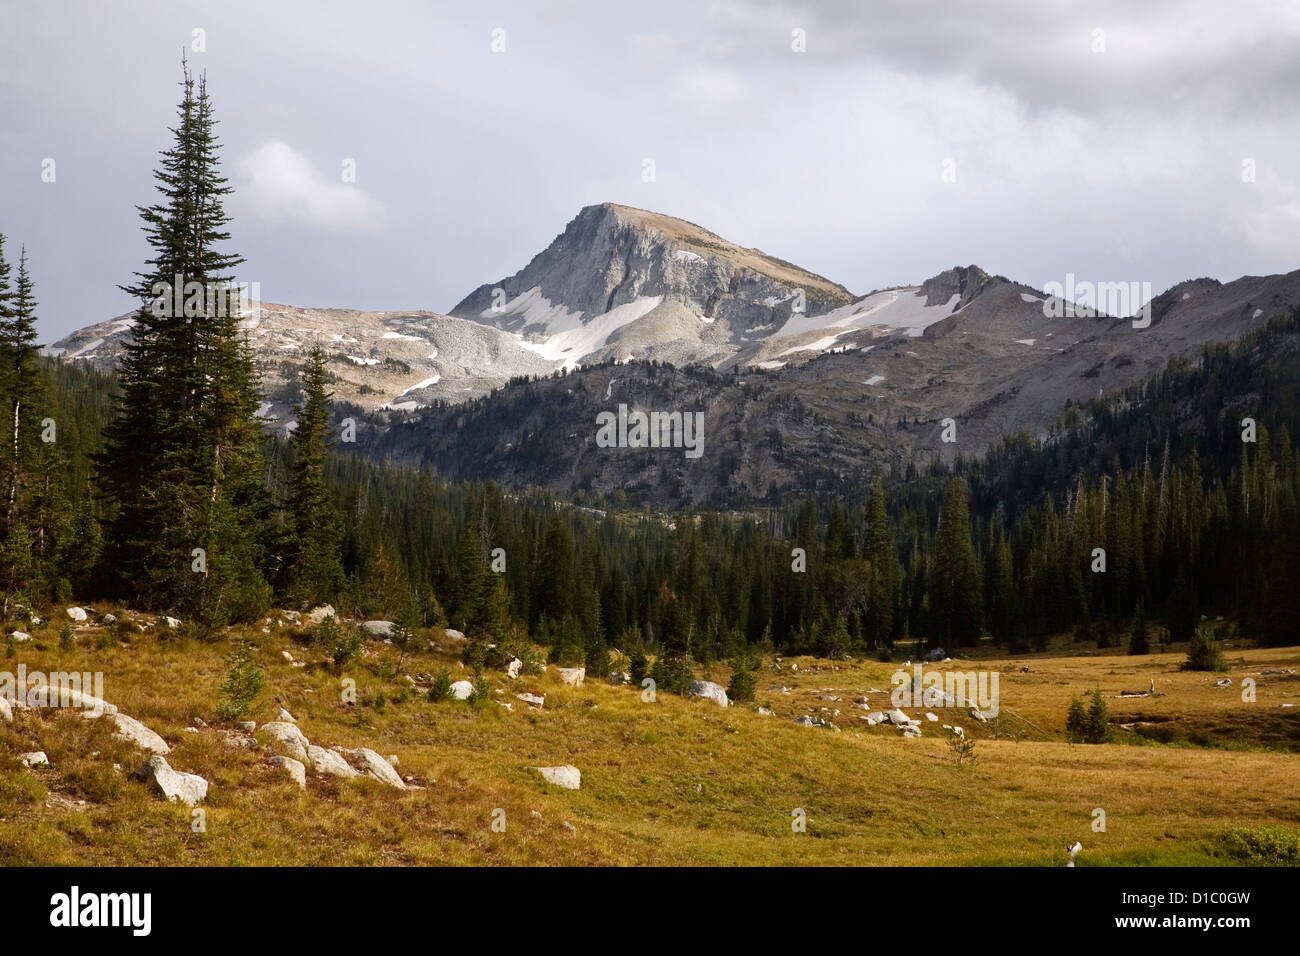 Eagle Cap and open meadows of East Lostine River Valley in the Eagle Cap Wilderness area of Wallowa-Whitman National - Stock Image